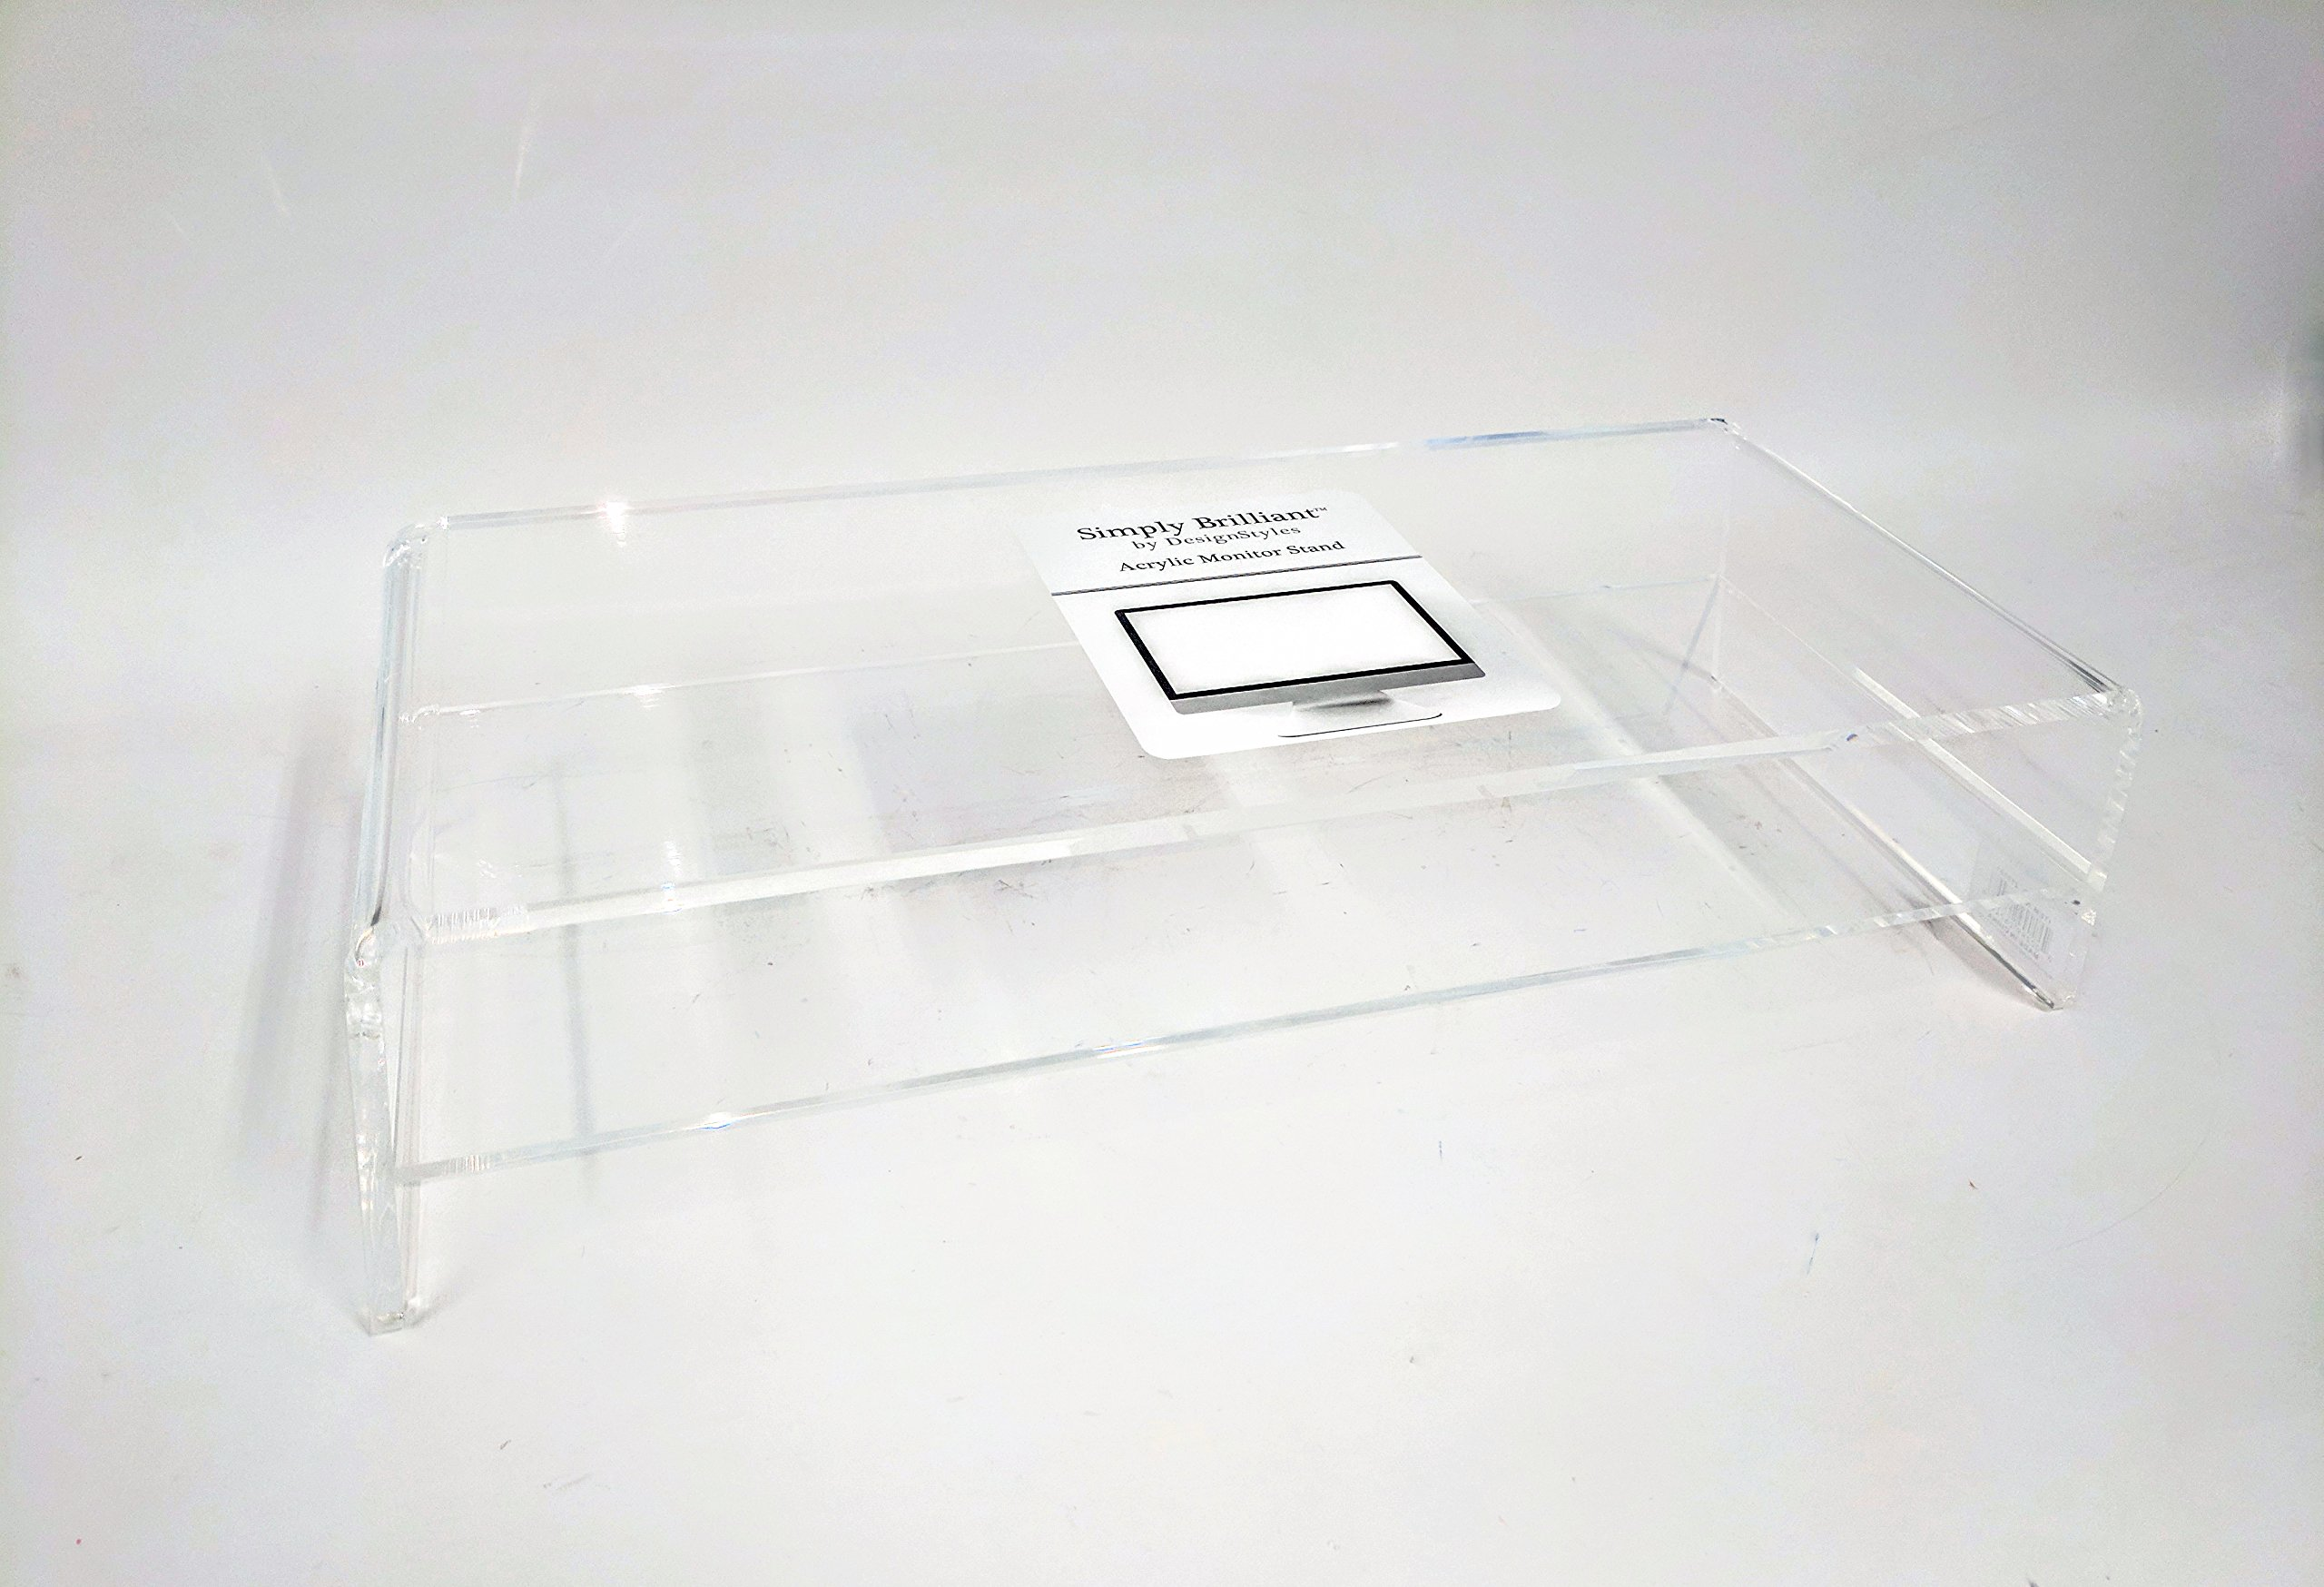 Designstyles Acrylic Laptop Stand Monitor Riser with Shelf; Underneath Storage Shelf for Paper, For Office Home Desktop